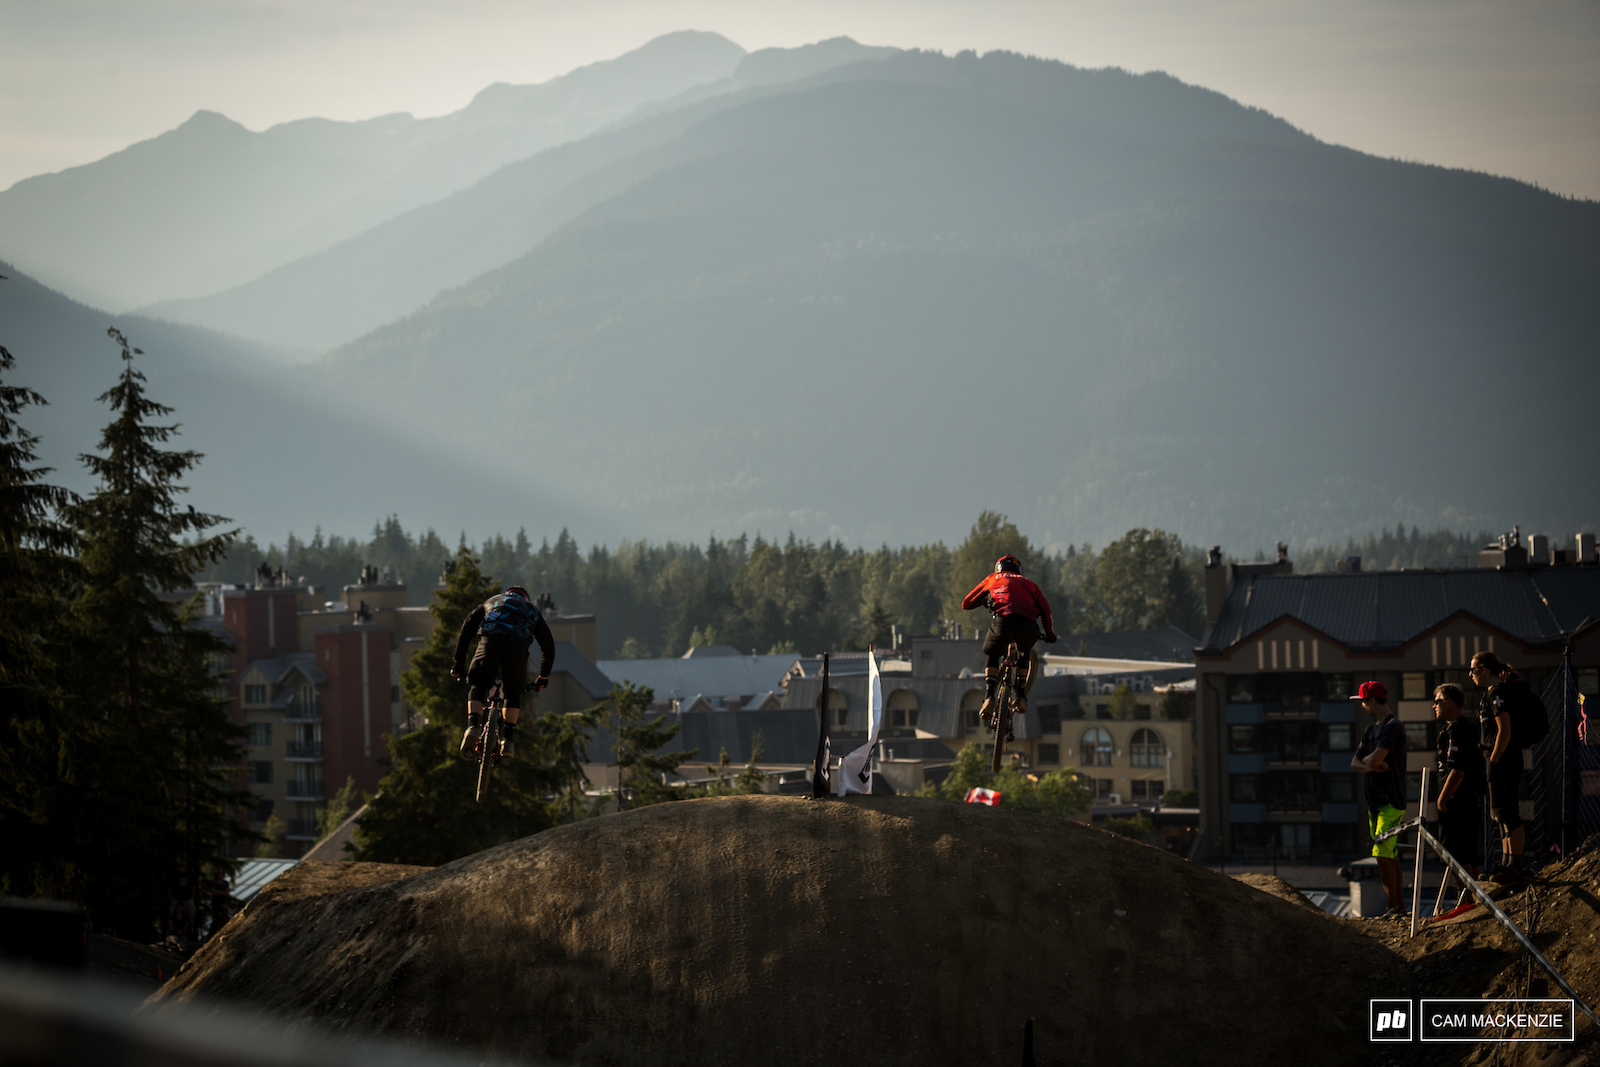 Dear Whistler Thanks for the great evening light. Two more days of it is all we need please